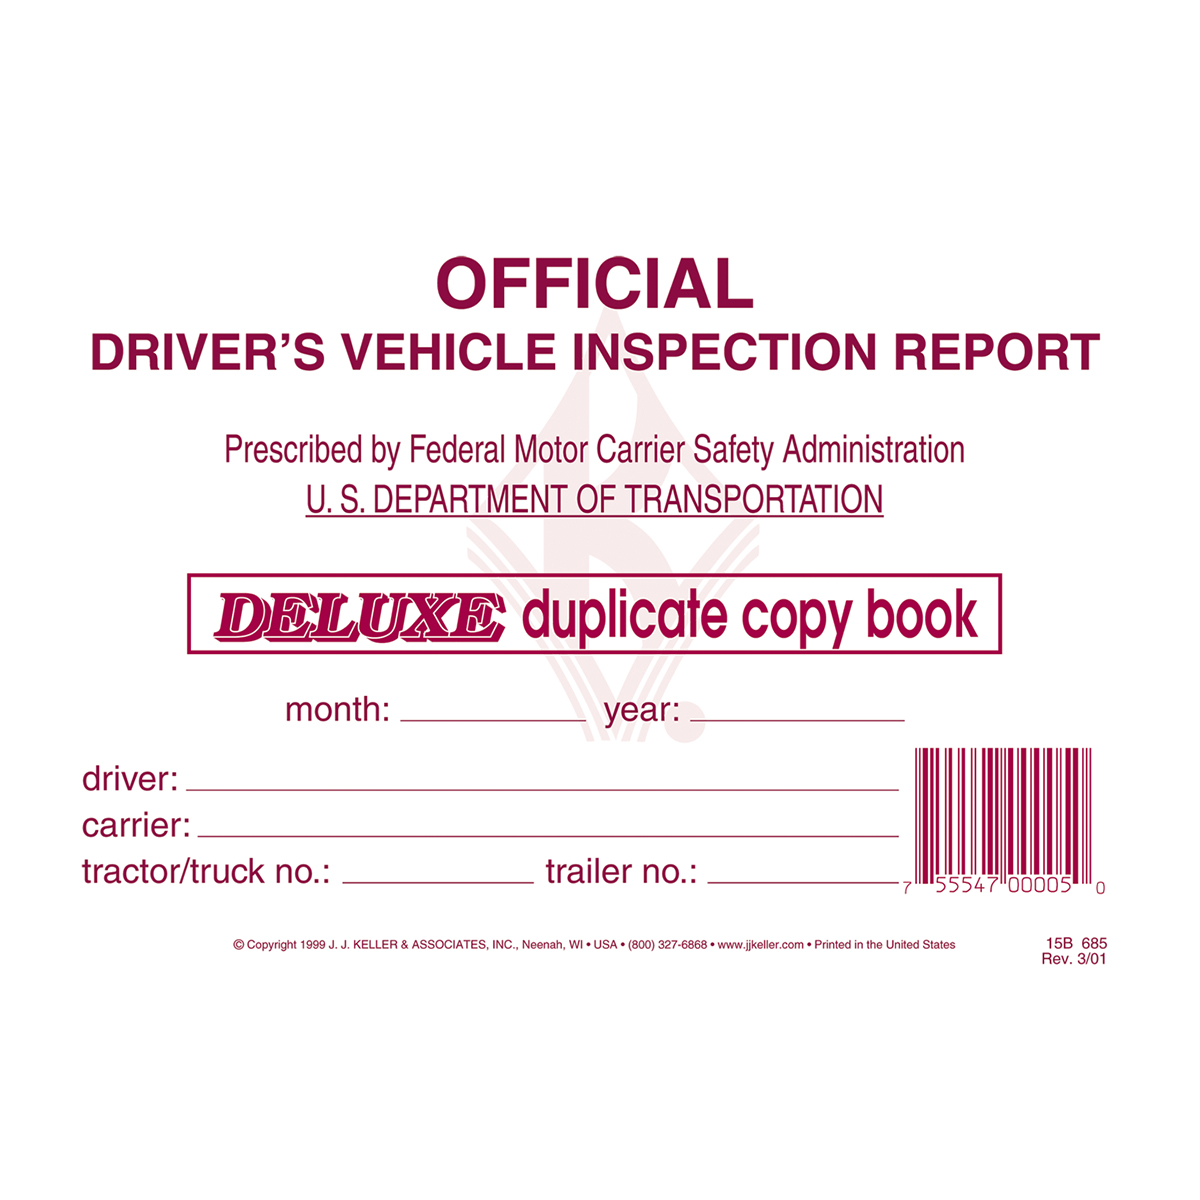 99907 Detailed Driver Vehicle Inspection Report with Carbon